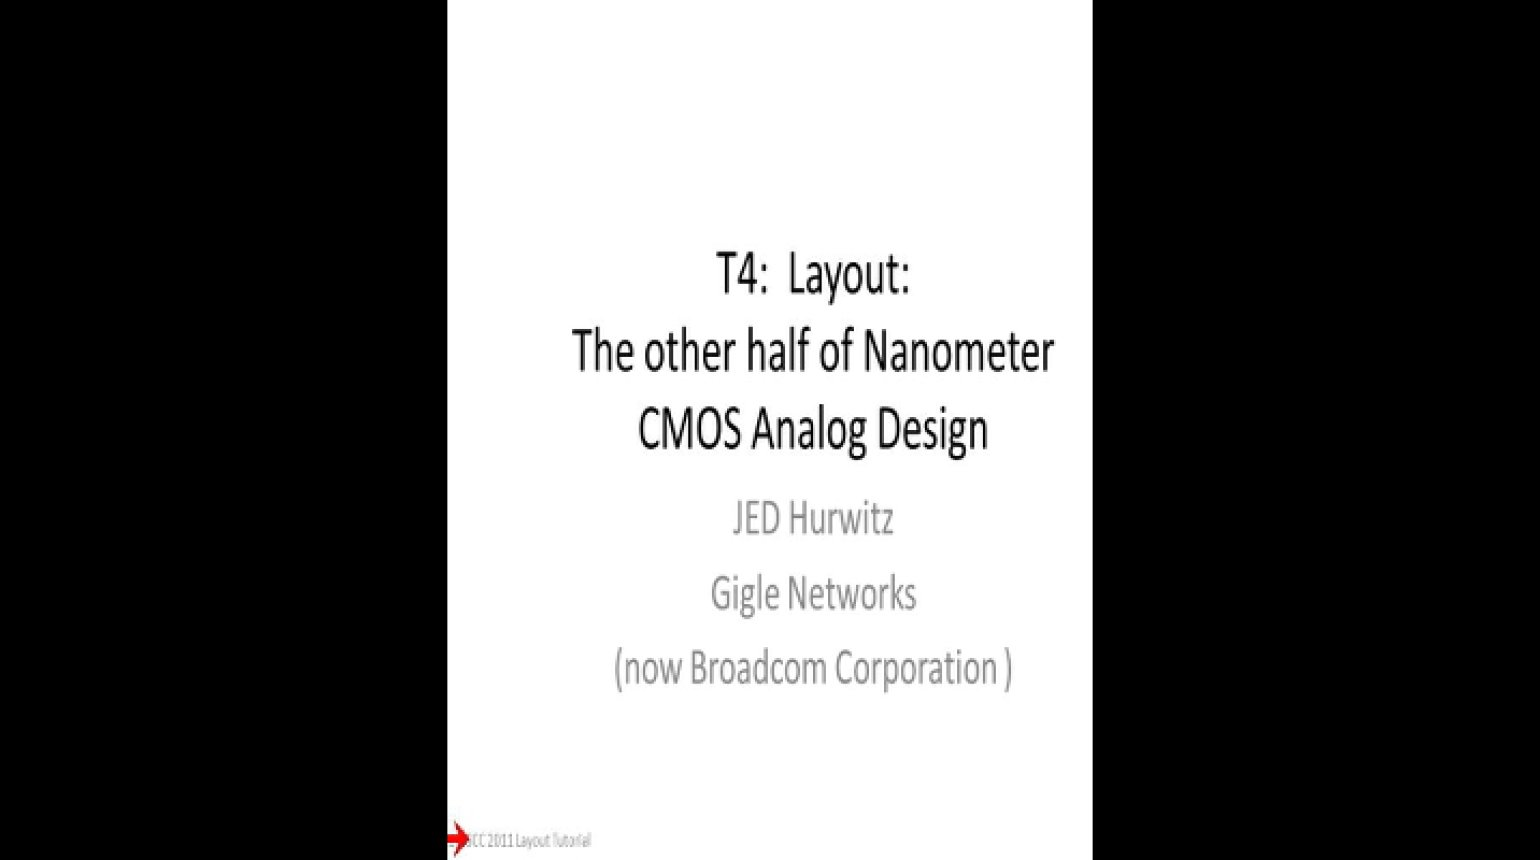 T4 Layout The Other Half of Nanometer CMOS Analog Design Video